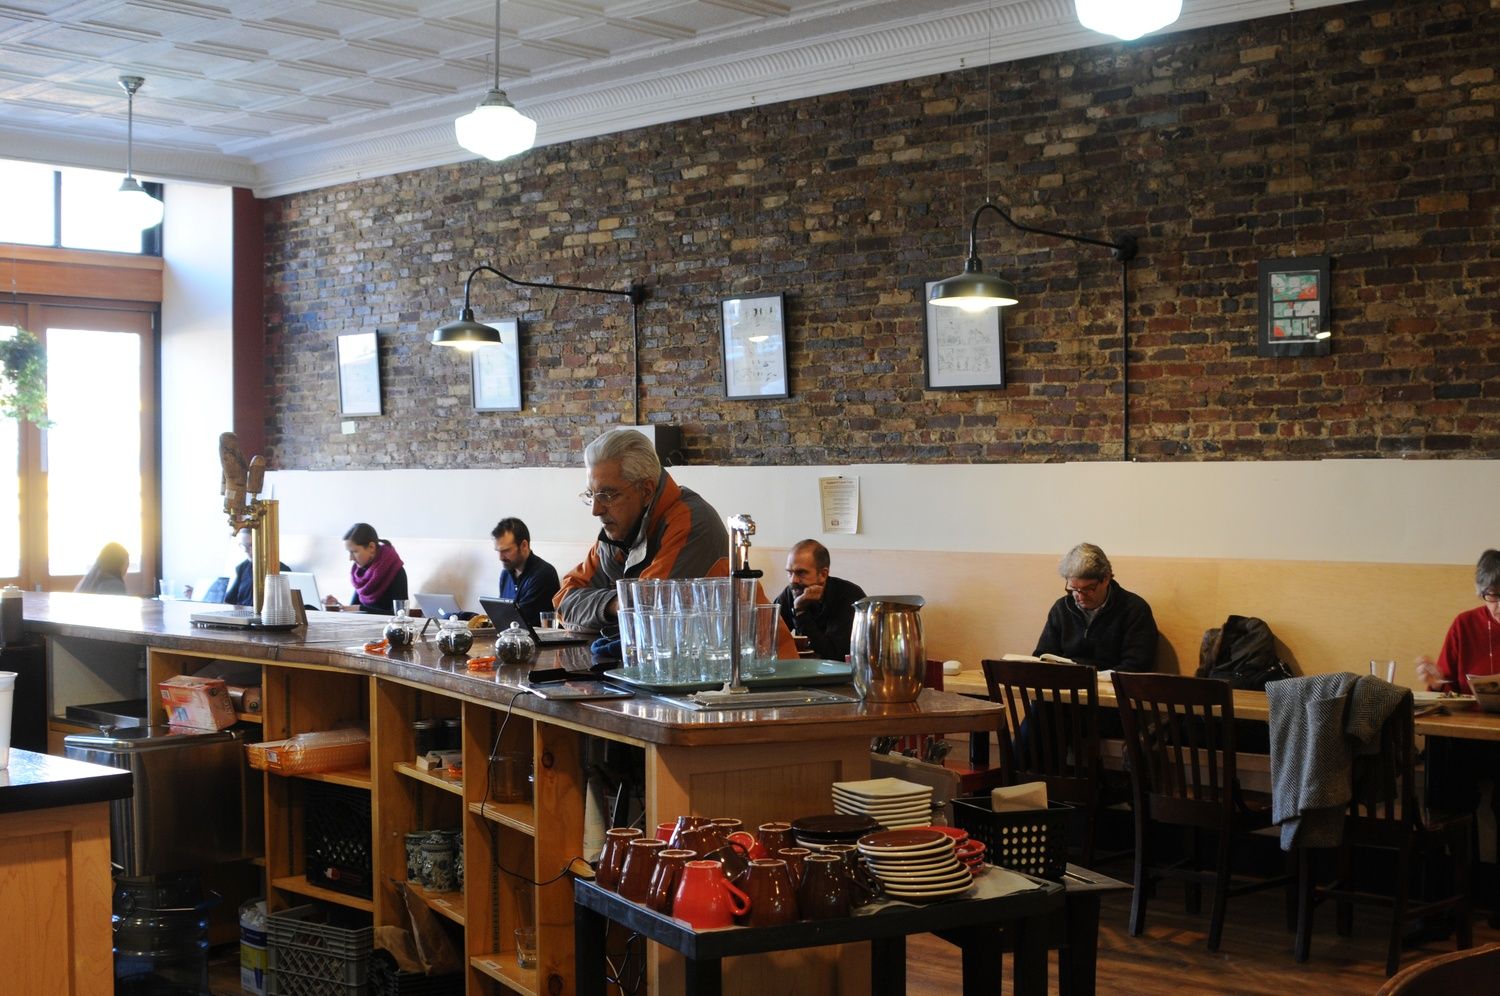 On a Thursday afternoon, many people sit, relax, and enjoy their coffee in Dwelltime's space.